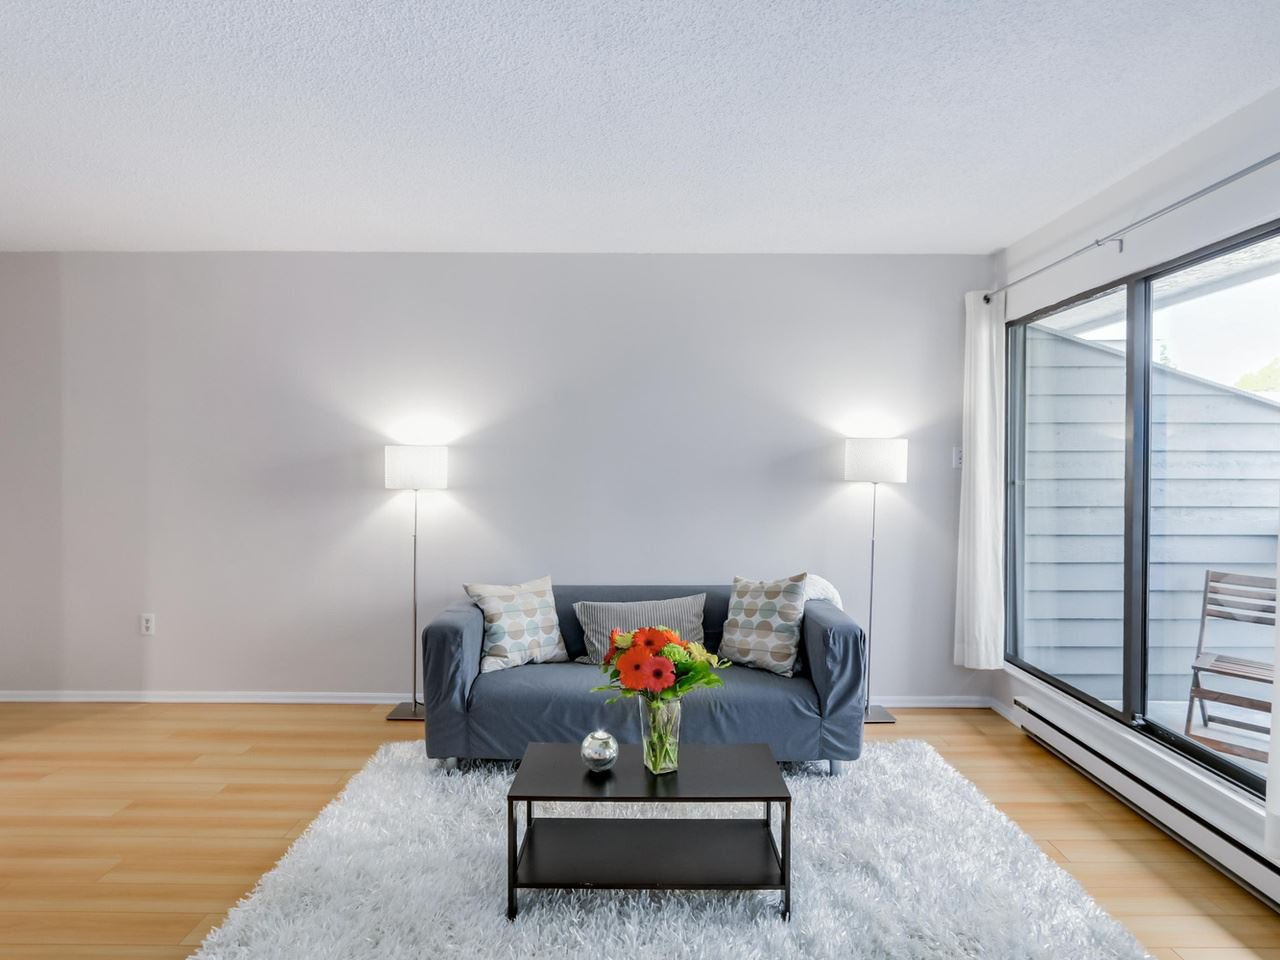 """Photo 6: Photos: 207 1545 E 2ND Avenue in Vancouver: Grandview VE Condo for sale in """"TALISHAN WOODS"""" (Vancouver East)  : MLS®# R2086466"""